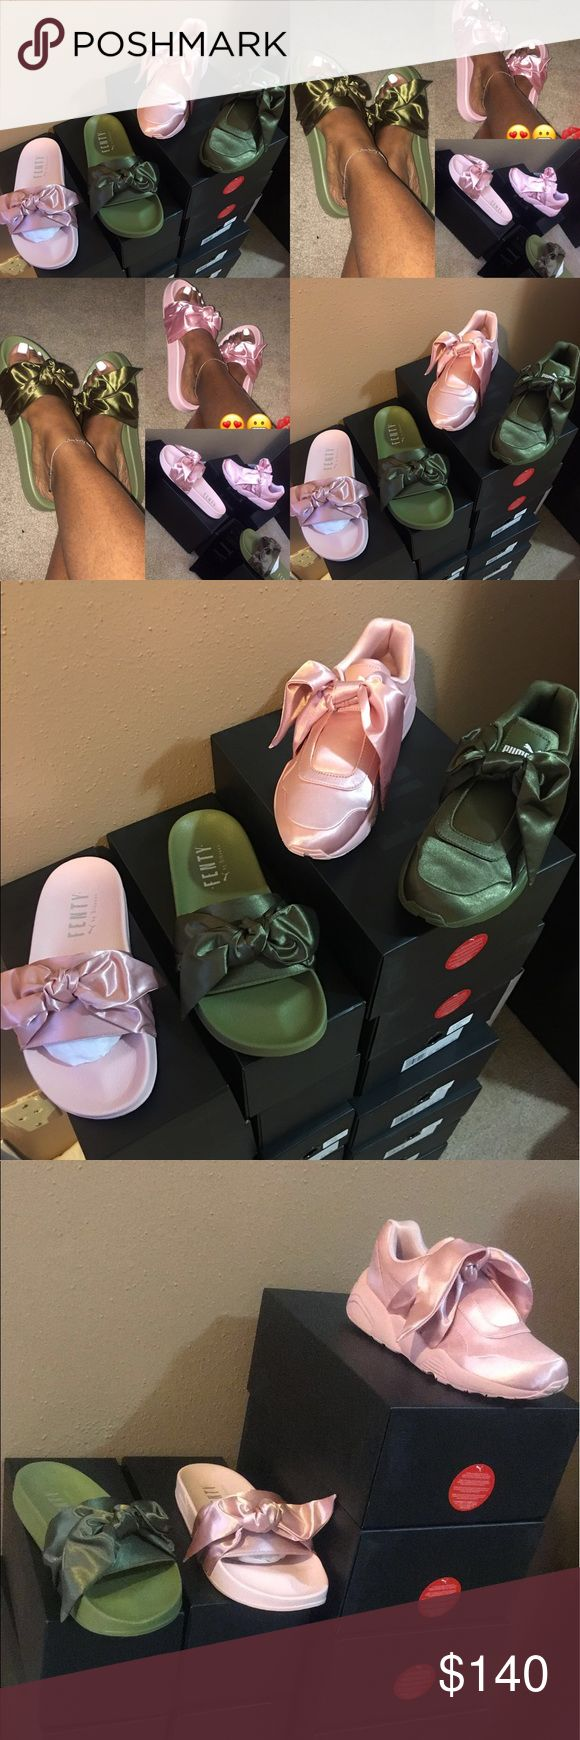 🎀💚Puma Fenty (Rihanna Collection)💚🎀 🚨🎀💚🎀💚🎀We Have All Sizes In...!!! 🚨❤️Serious Buyers Only... Yes They Are The Authentic/Real Rihanna Puma Fenty Collection... Slides are $140 the gym shoes are $220❤️🚨🎀💚🎀💚🎀 Reasonable Offers will be accepted!!! Puma Shoes Sandals